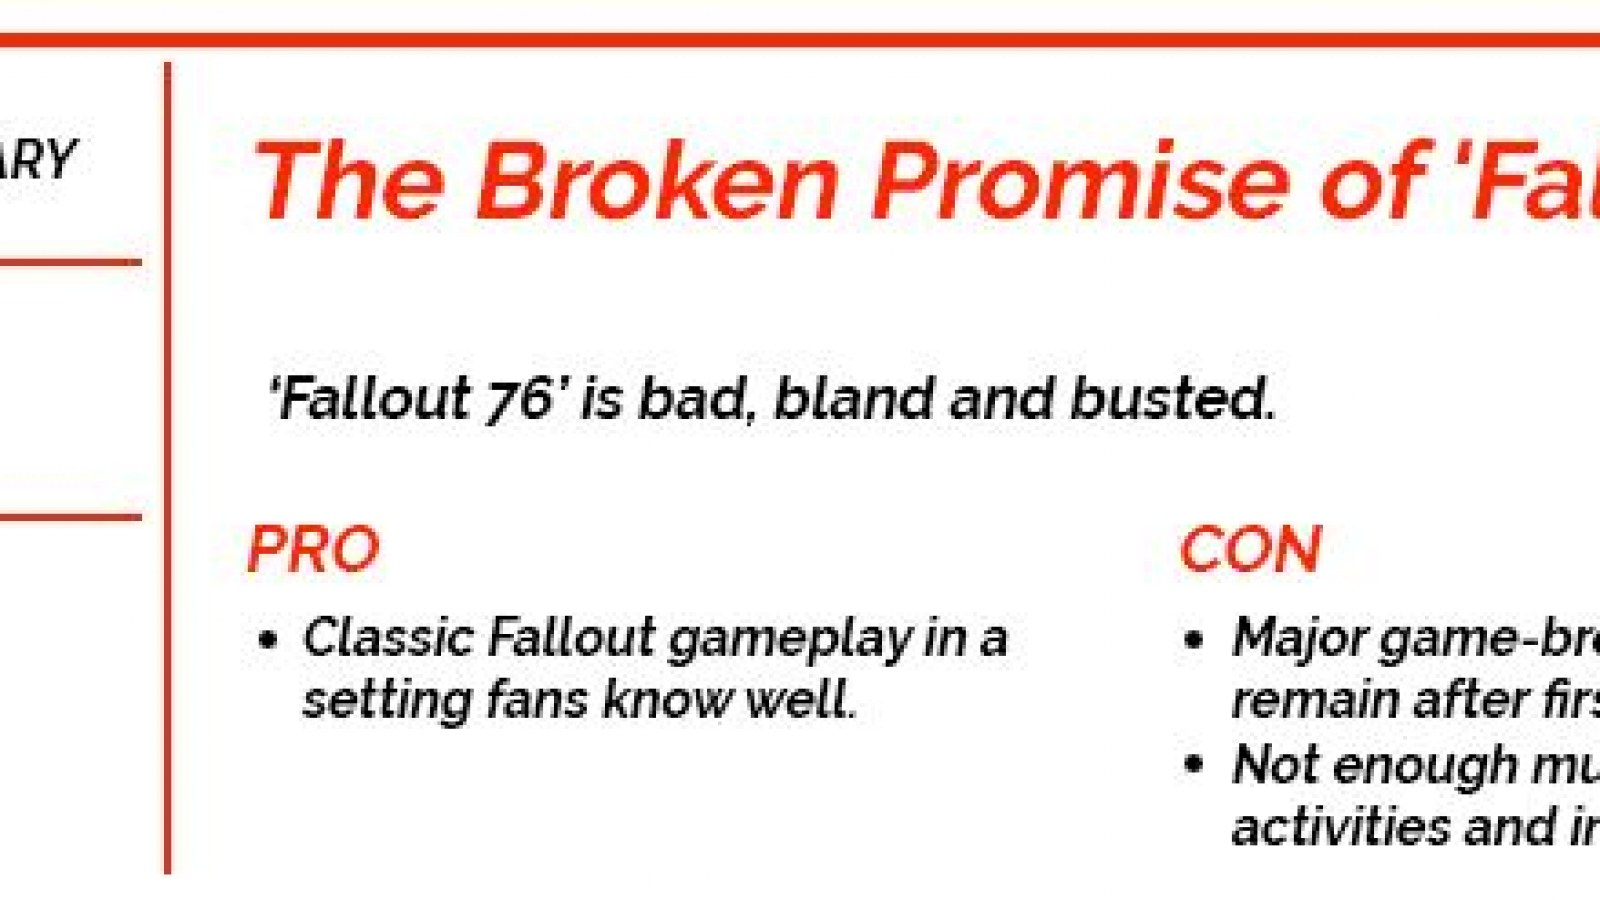 The Broken Promise of 'Fallout 76' (Review)